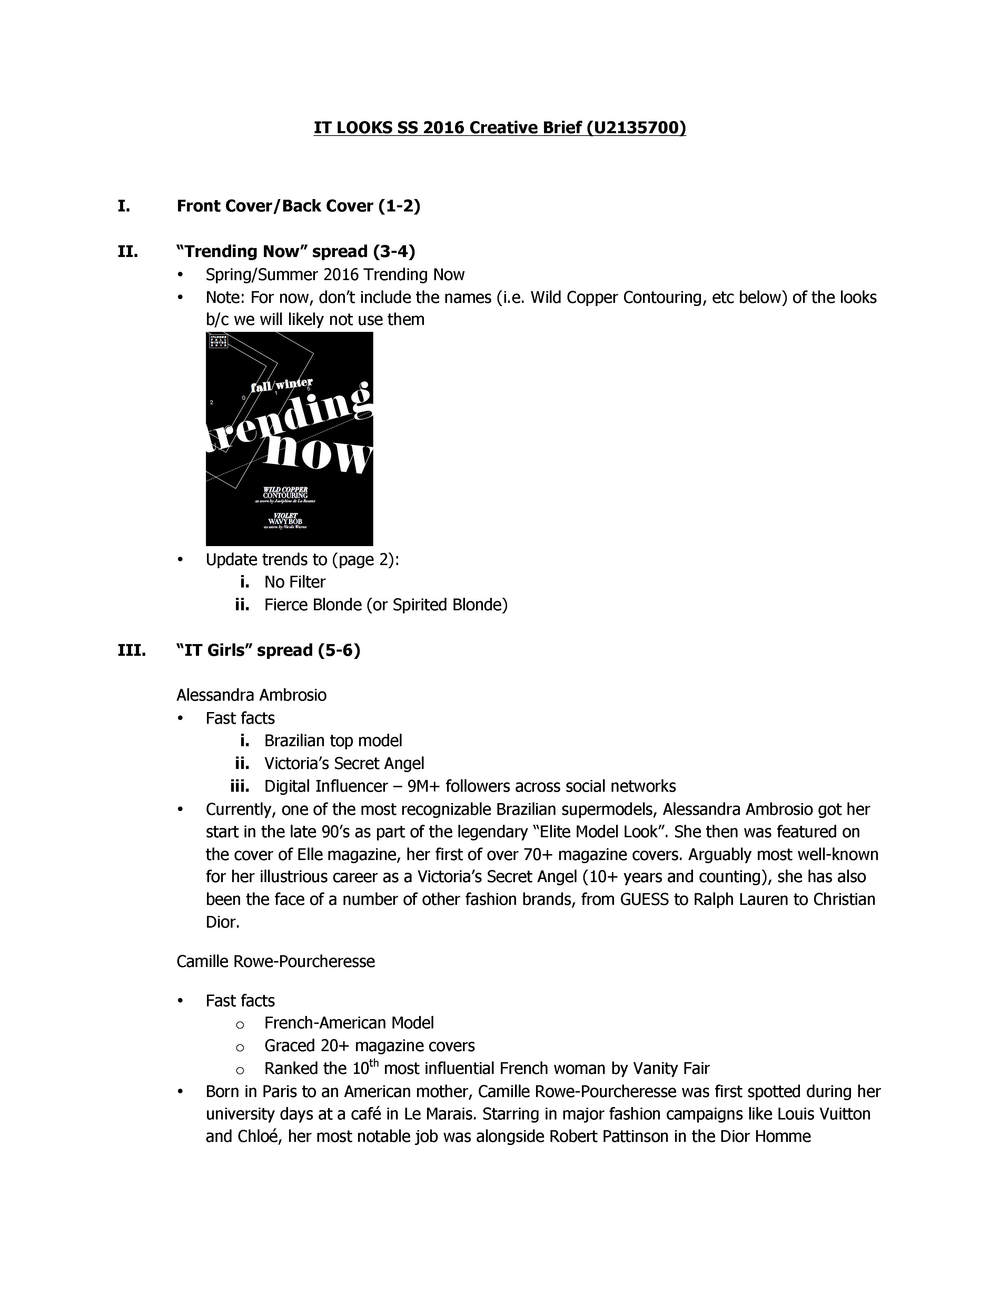 SS 16 IT Looks Tech Guide Brief 11.18.15_Page_1.jpg